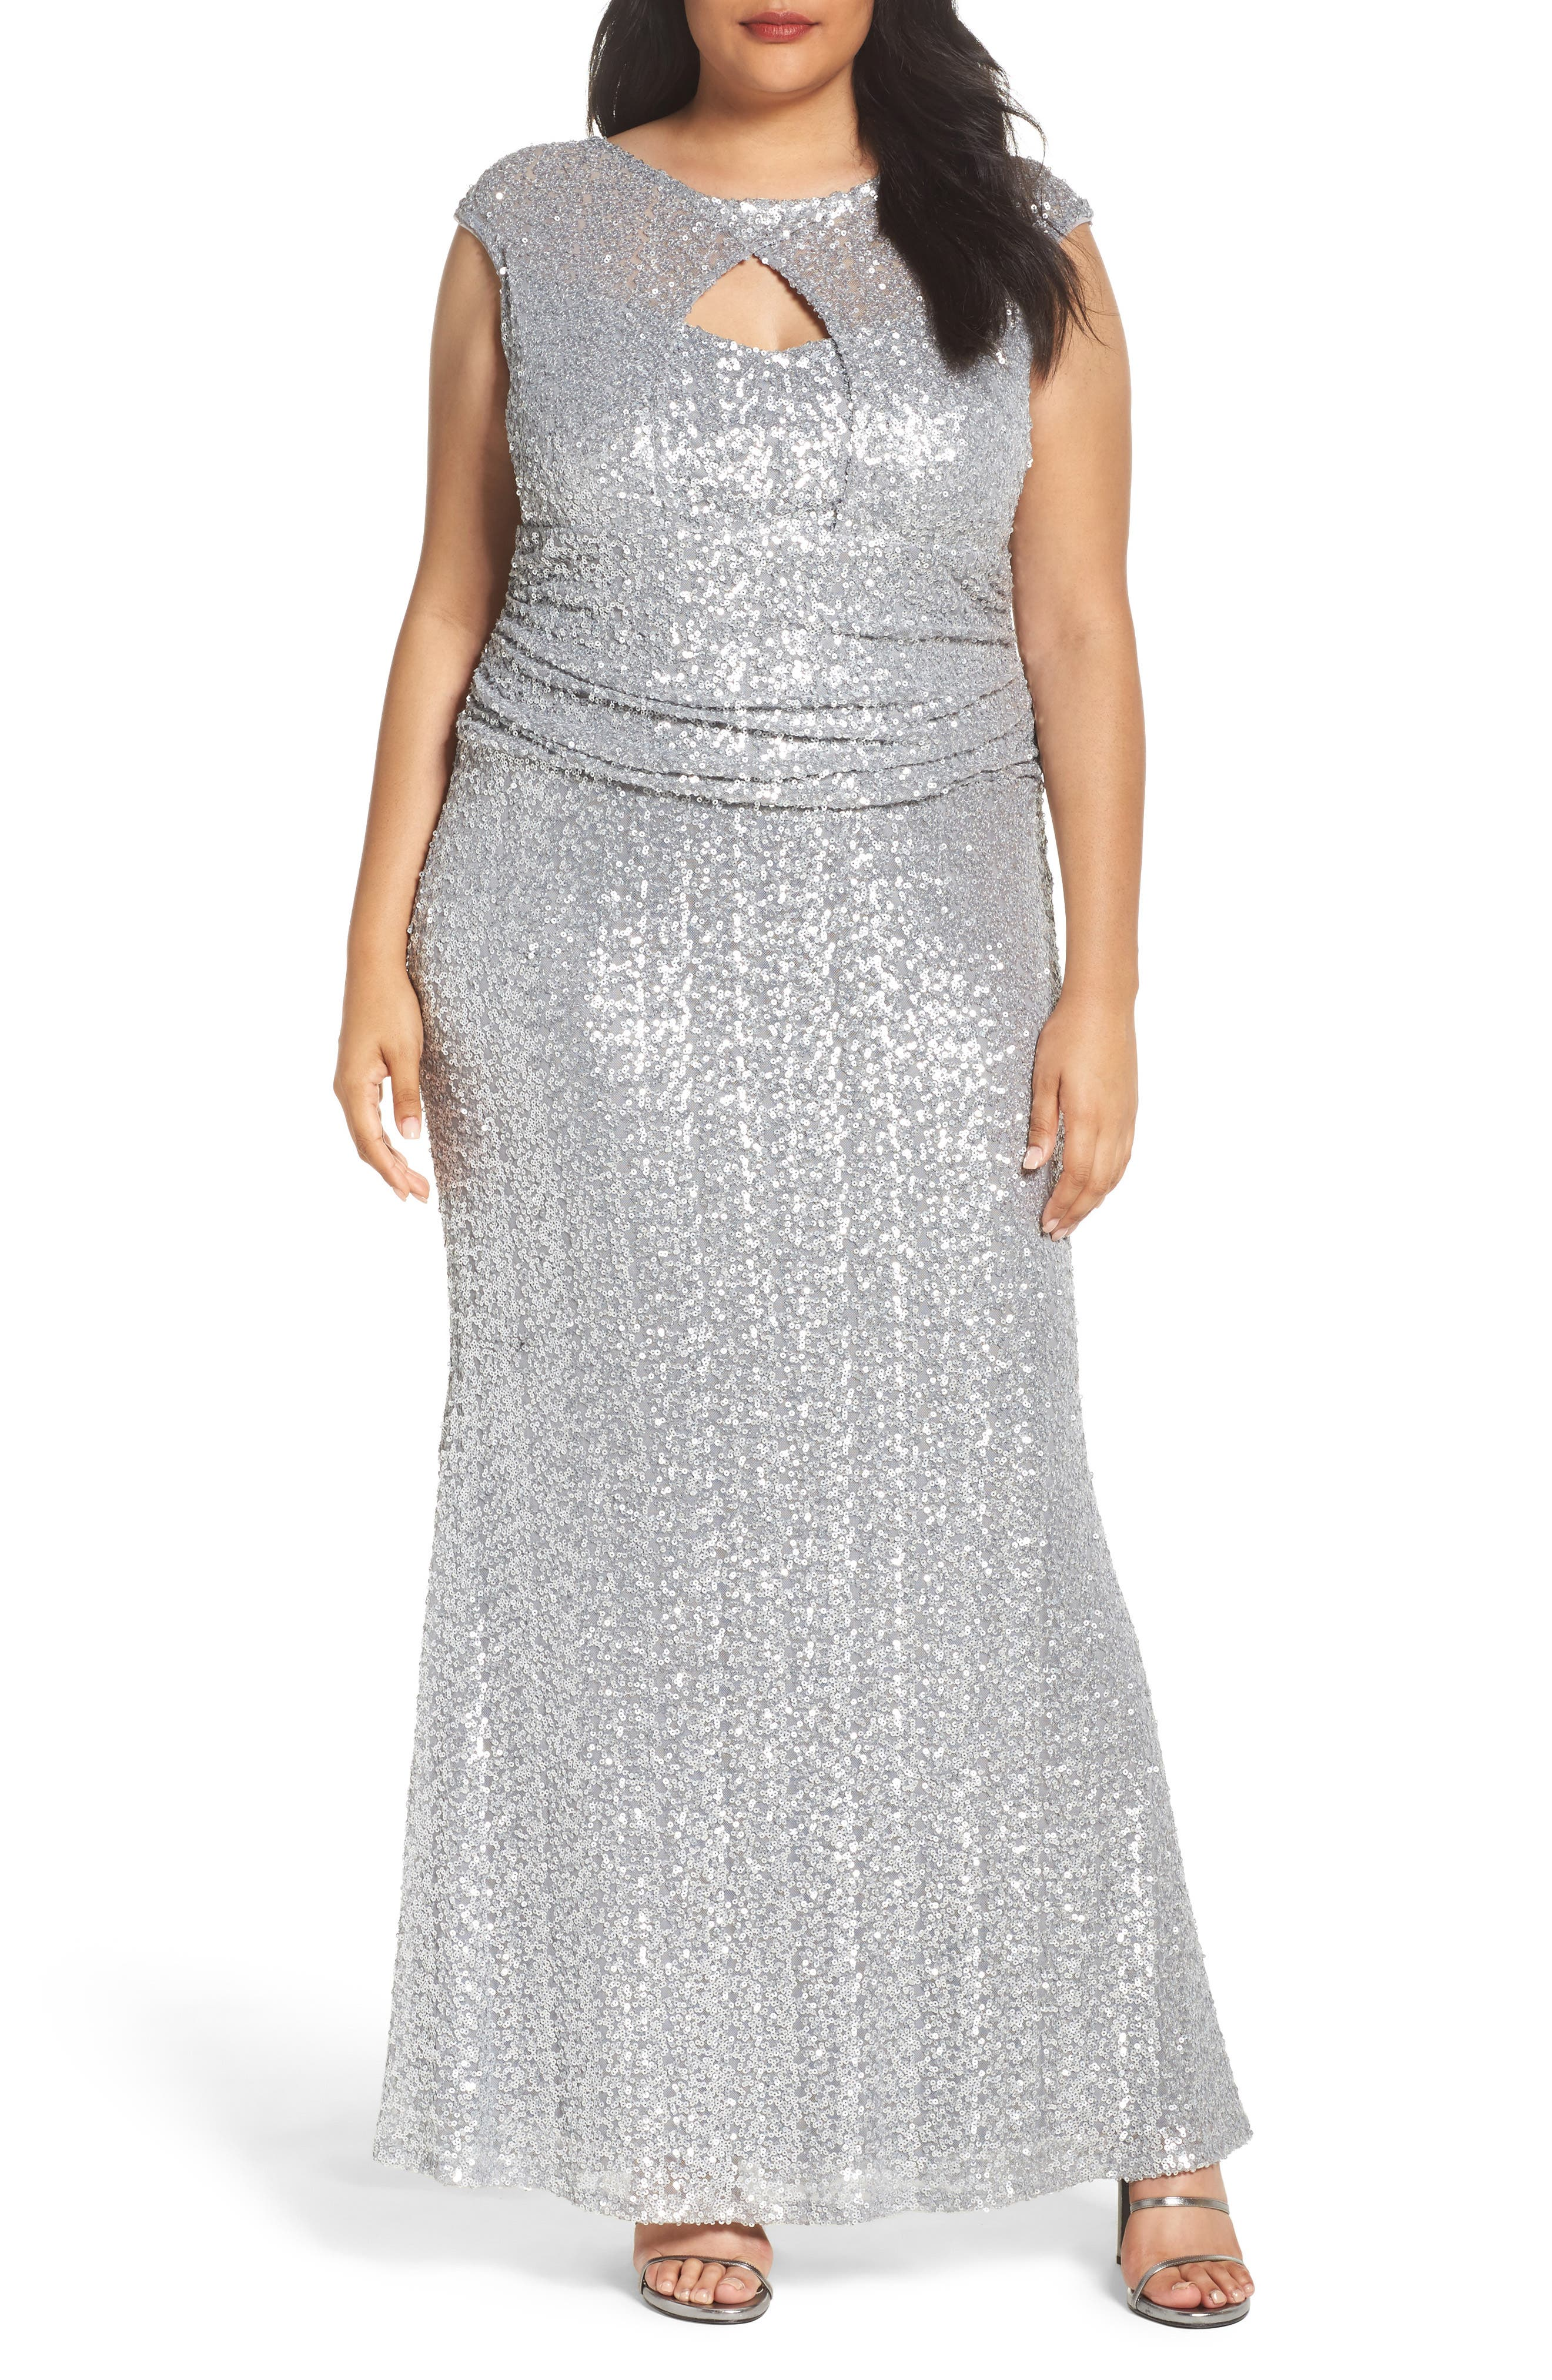 Alternate Image 1 Selected - Marina Cutout Sequin Lace Gown (Plus Size)